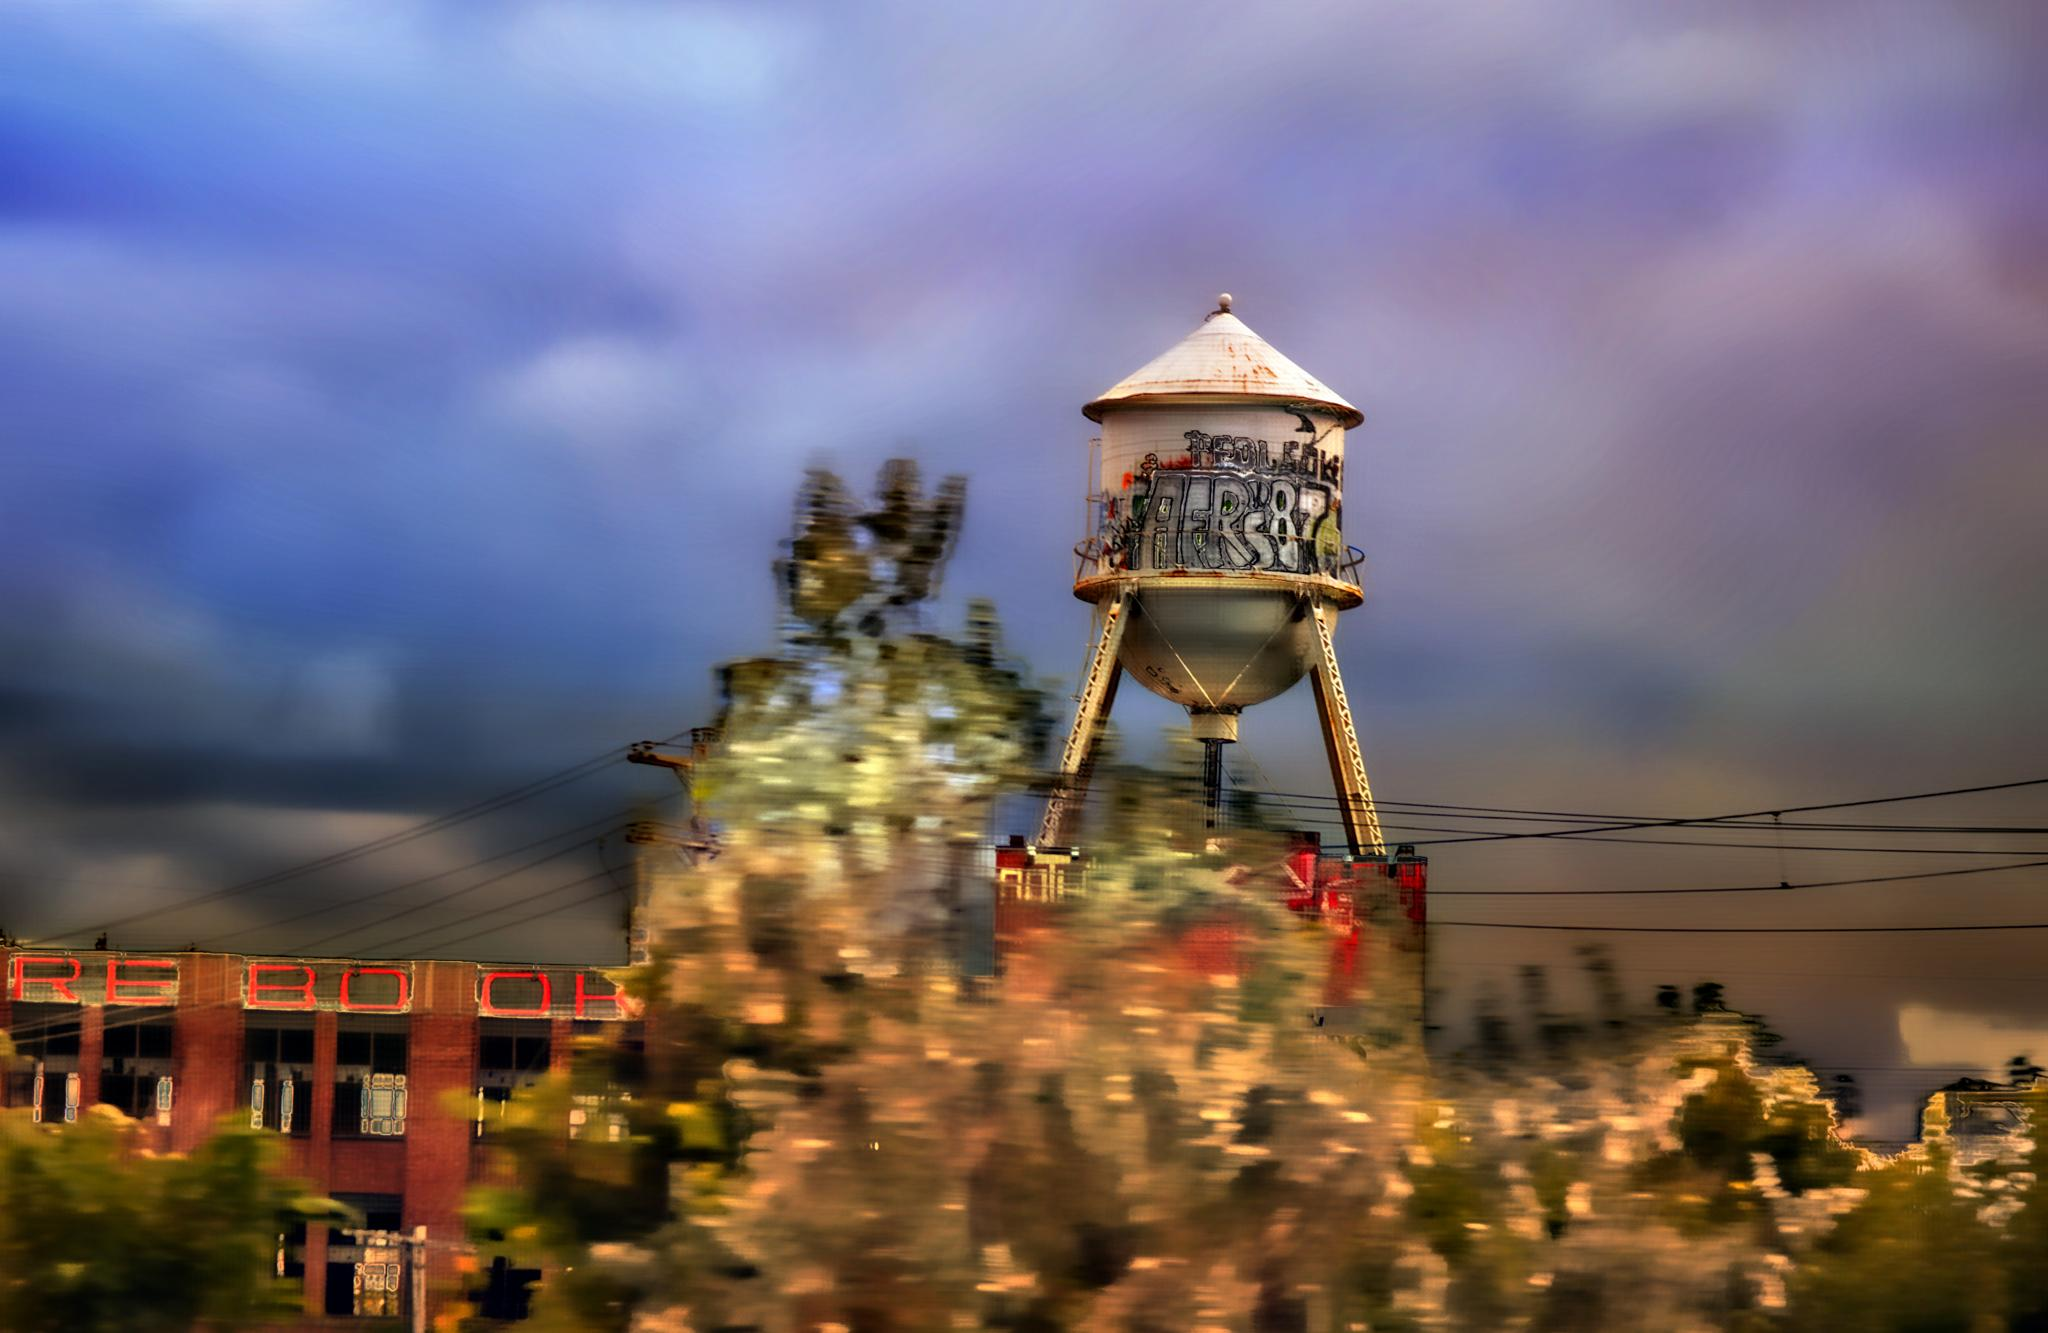 Water Tower by candy.holenchick